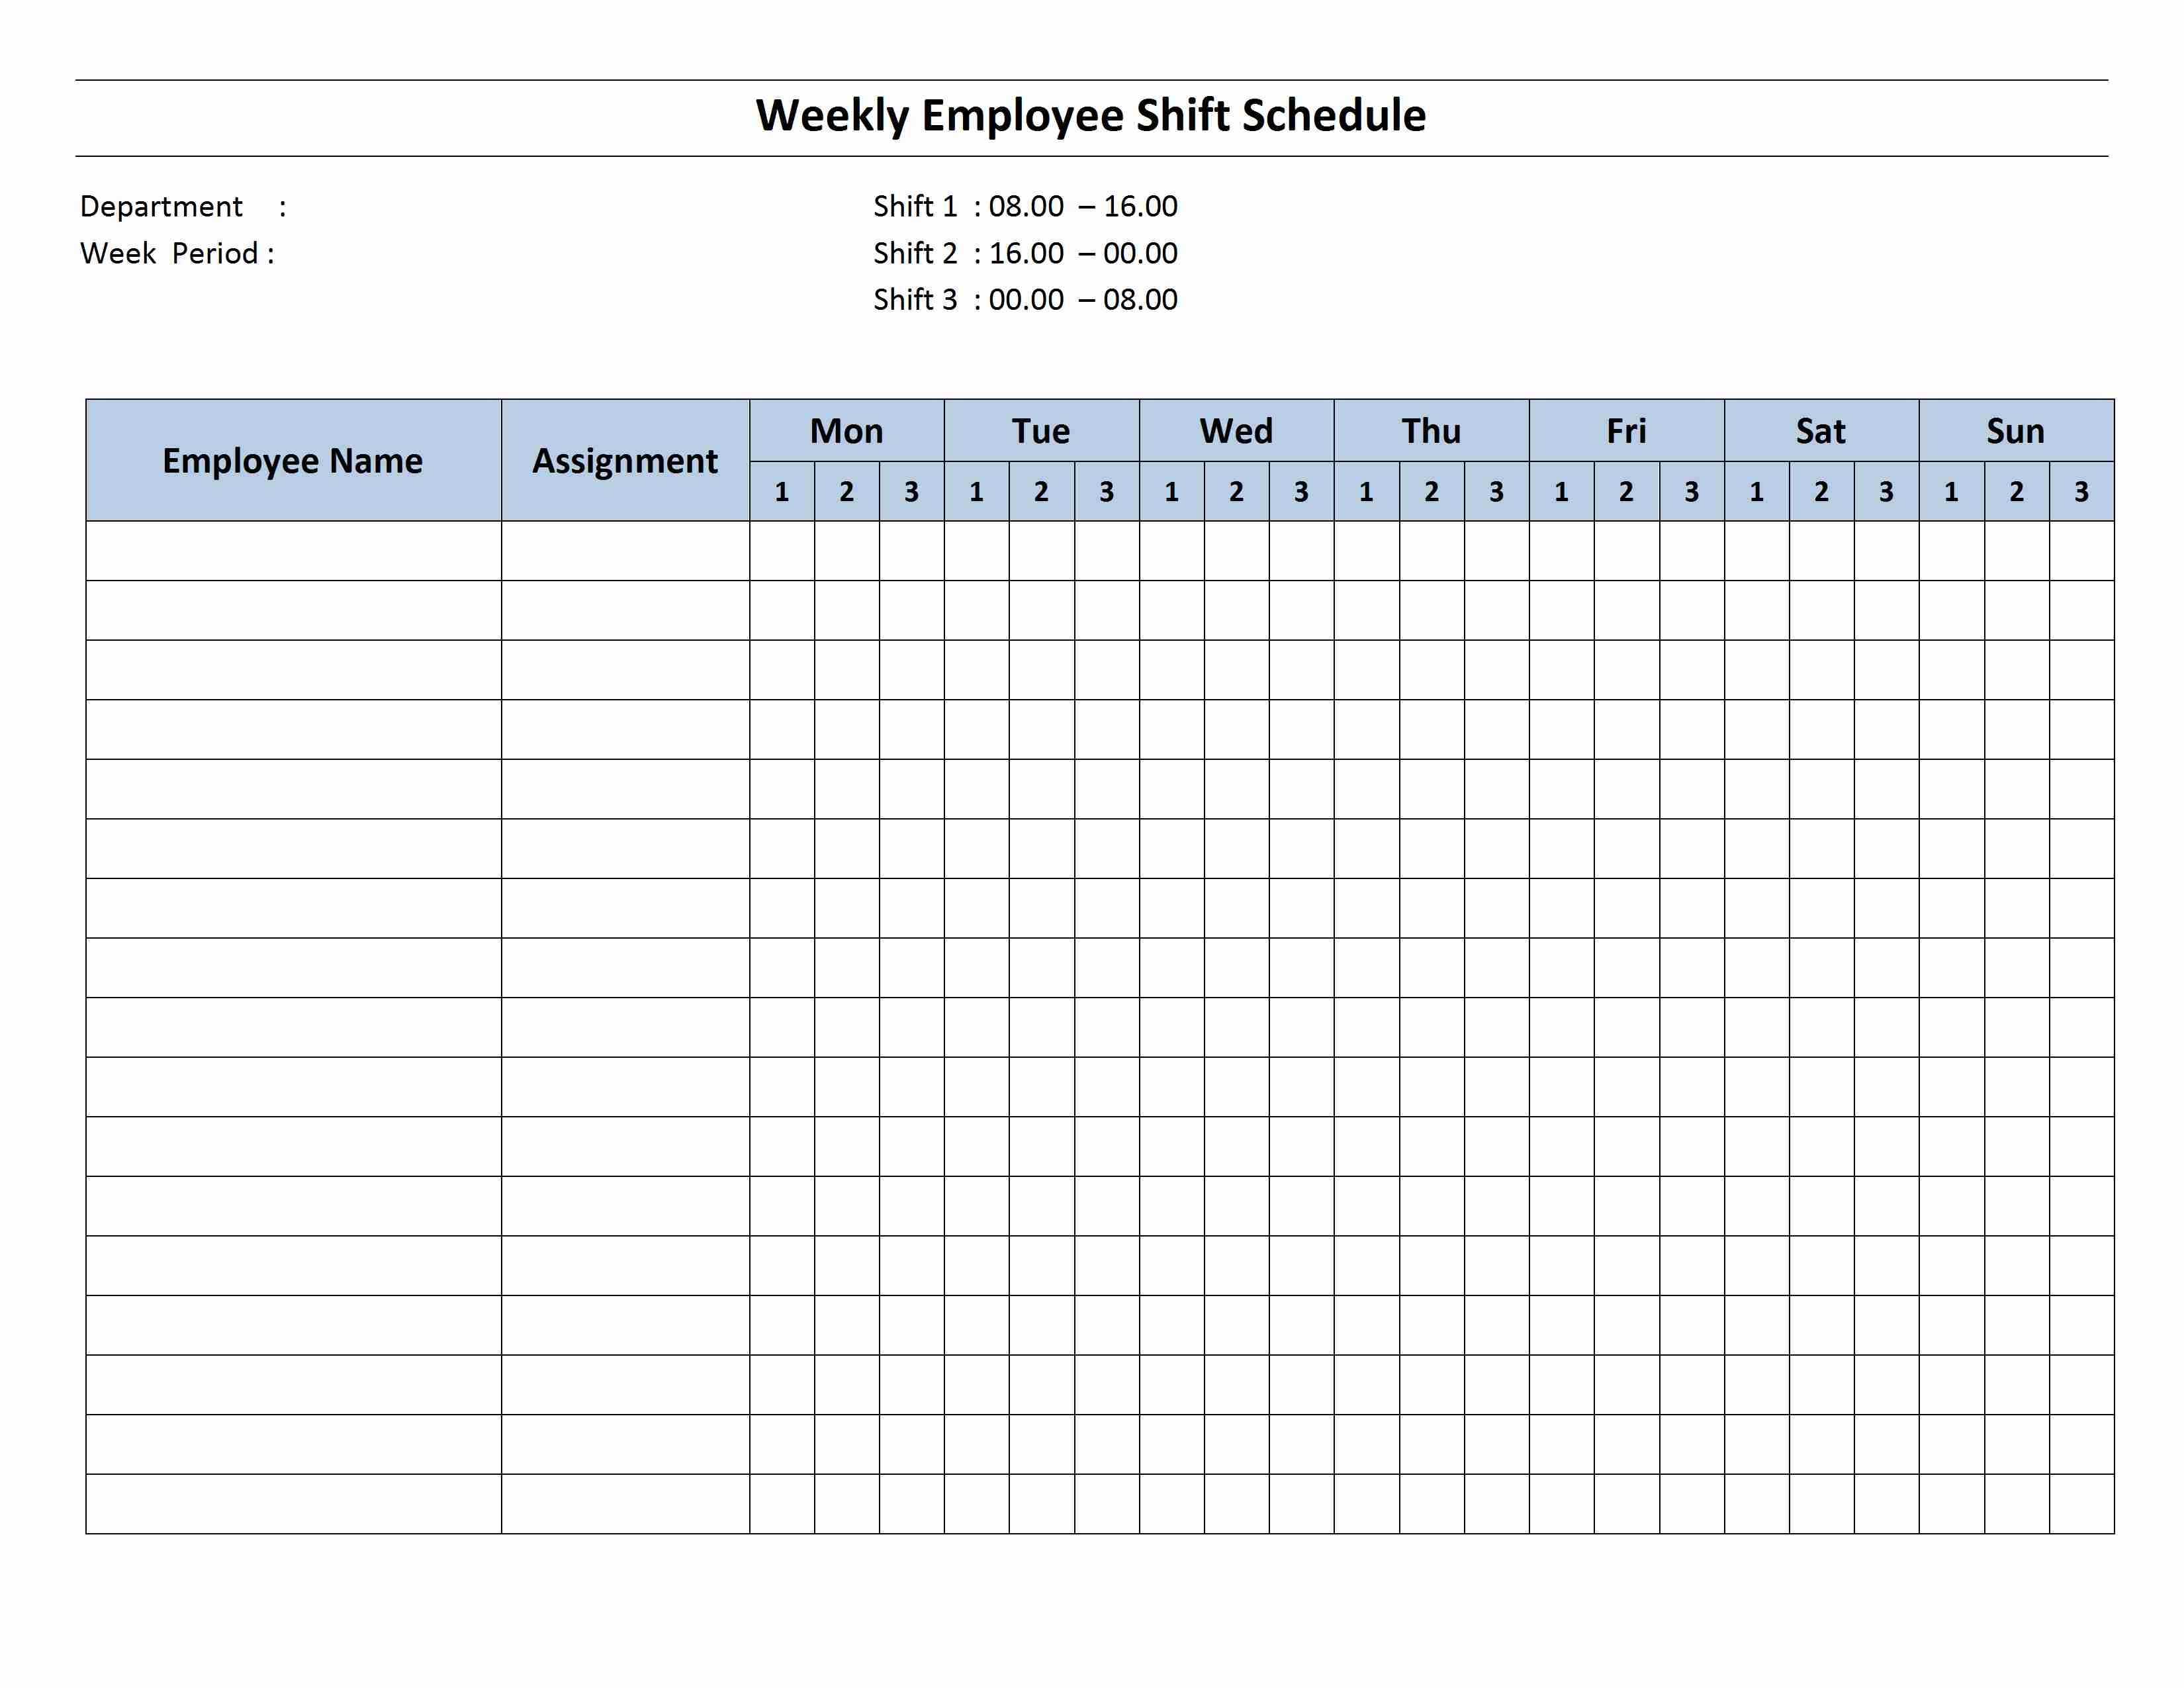 Weekly 8 Hour Shift Schedule Template for Word